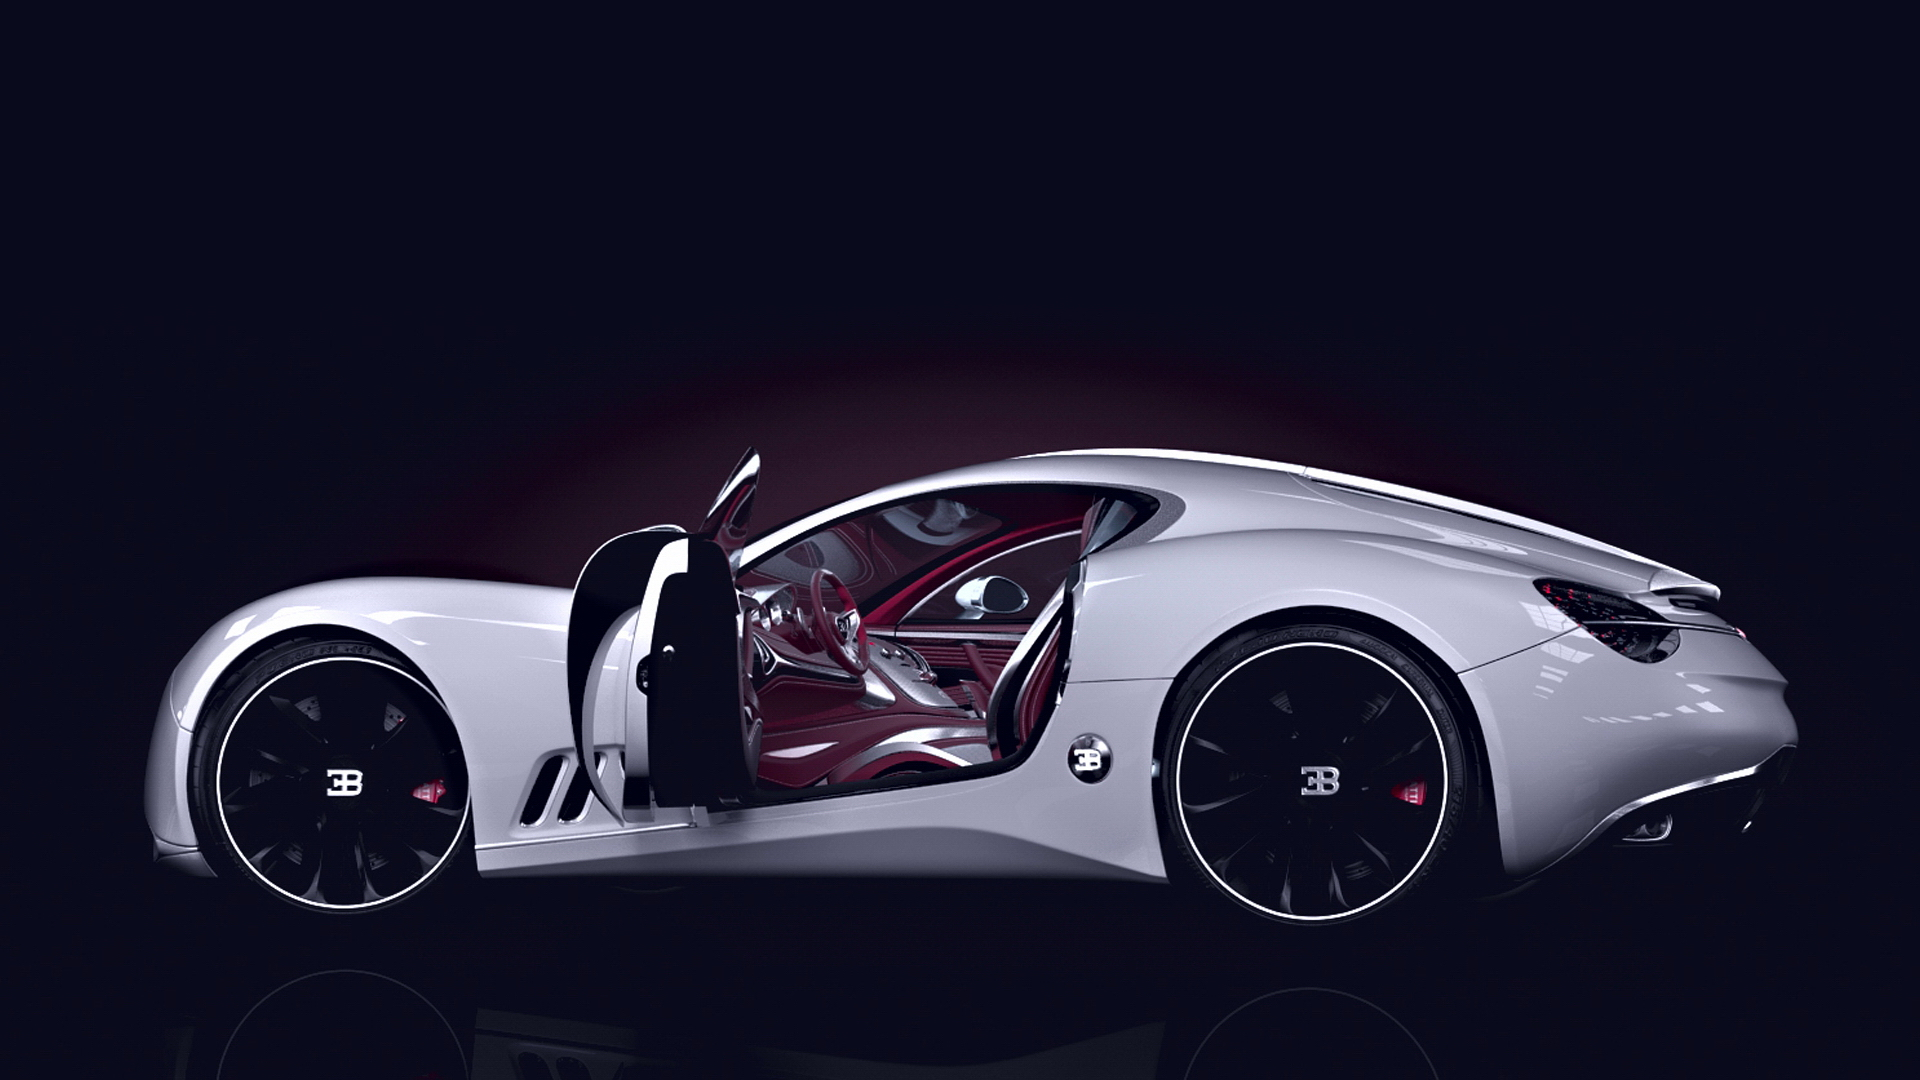 Cute Cats And Dogs Hd Wallpapers Car Body Design Of Bugatti Gangloff Concept